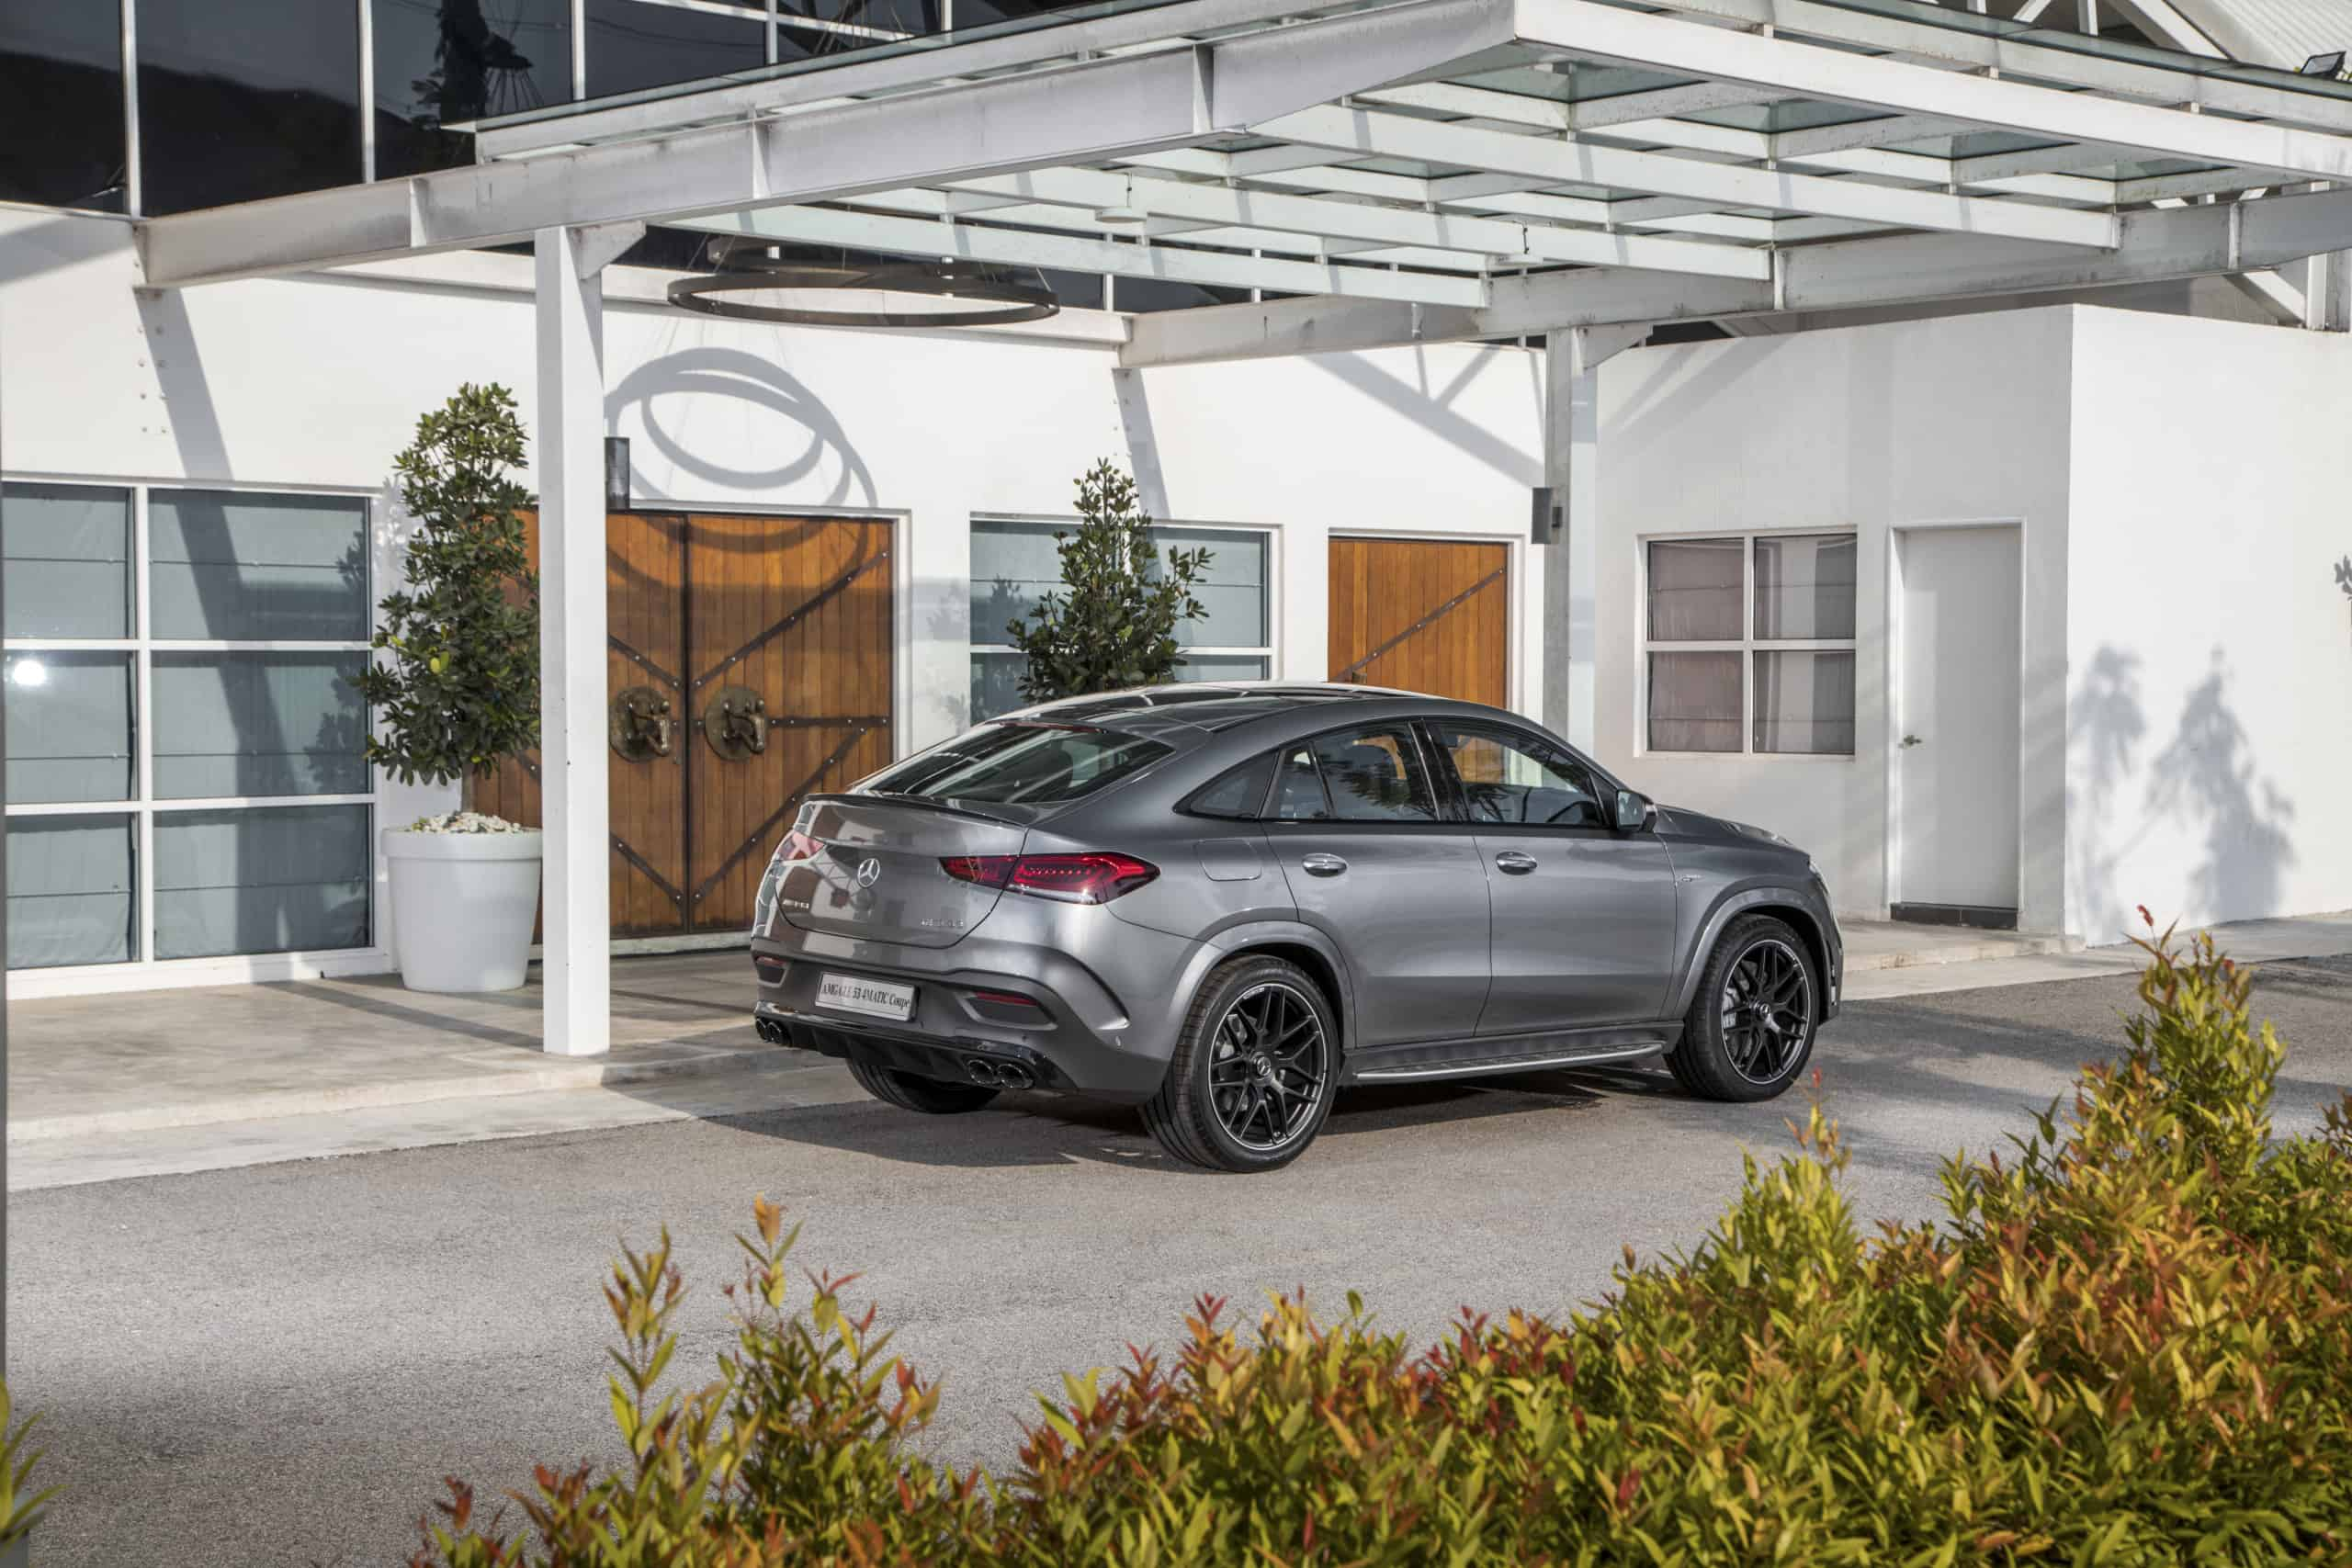 Mercedes_Benz_Malaysia_AMG_GLE53_4Matic_Coupe exterior 2